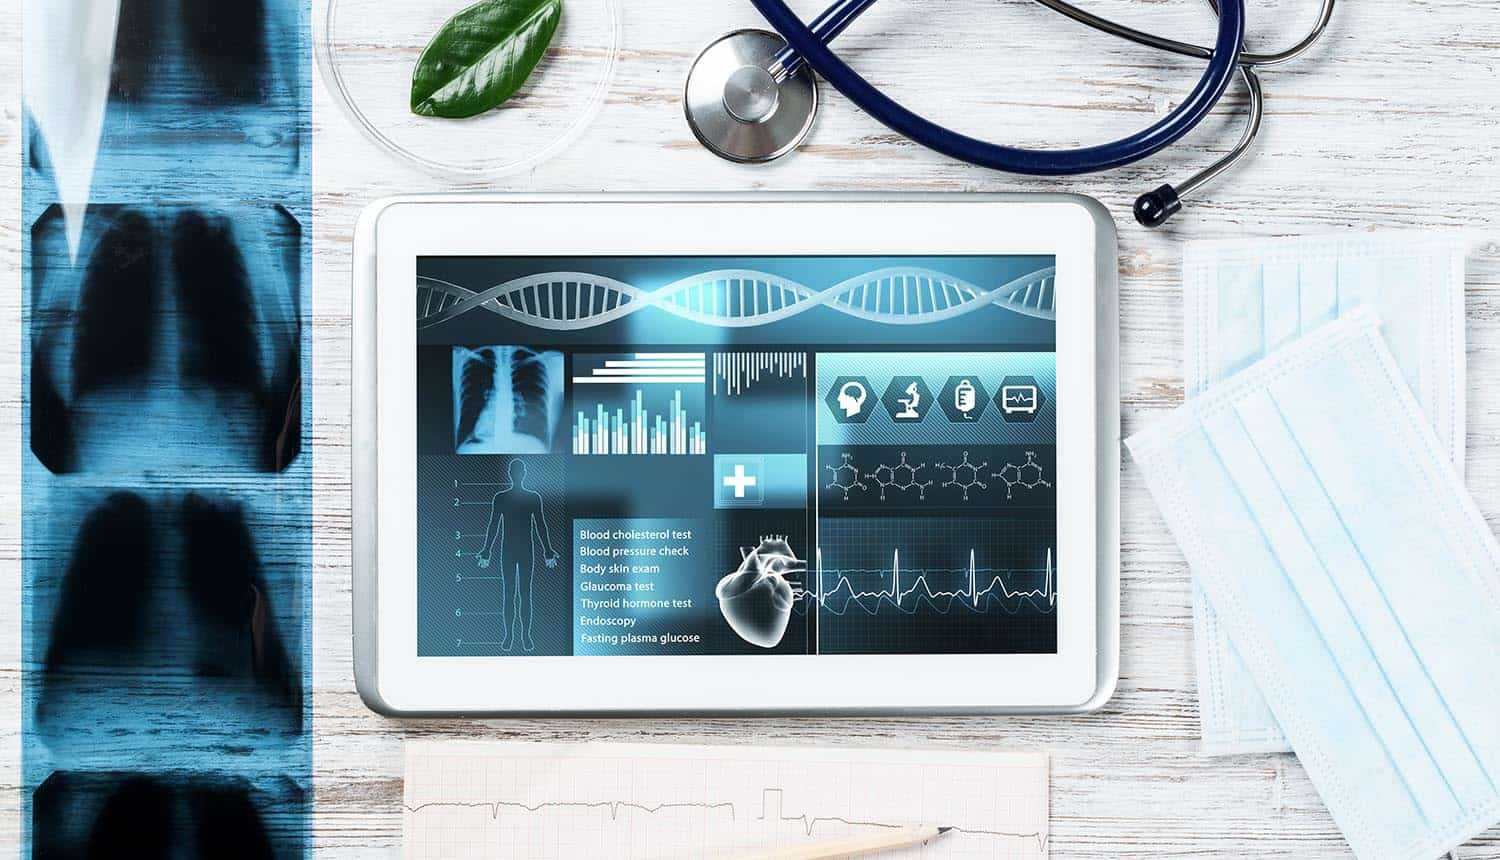 Tablet computer with medical diagnostics showing ransomware attacks responsible for healthcare data breaches